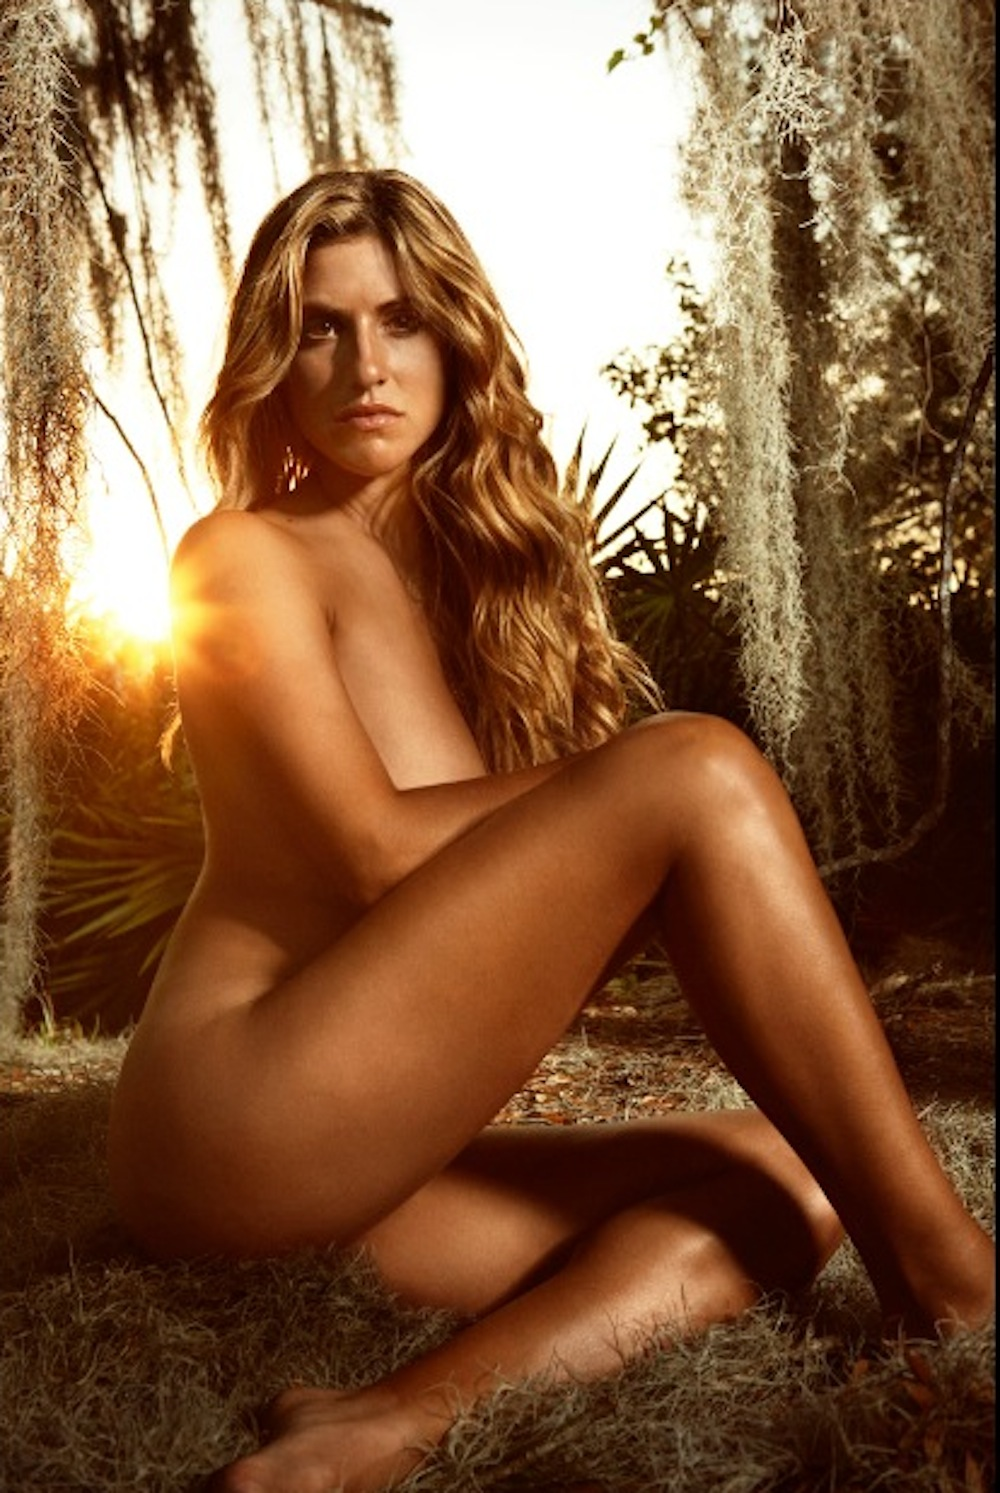 Belen Mozo ESPN Magazine Body Issue